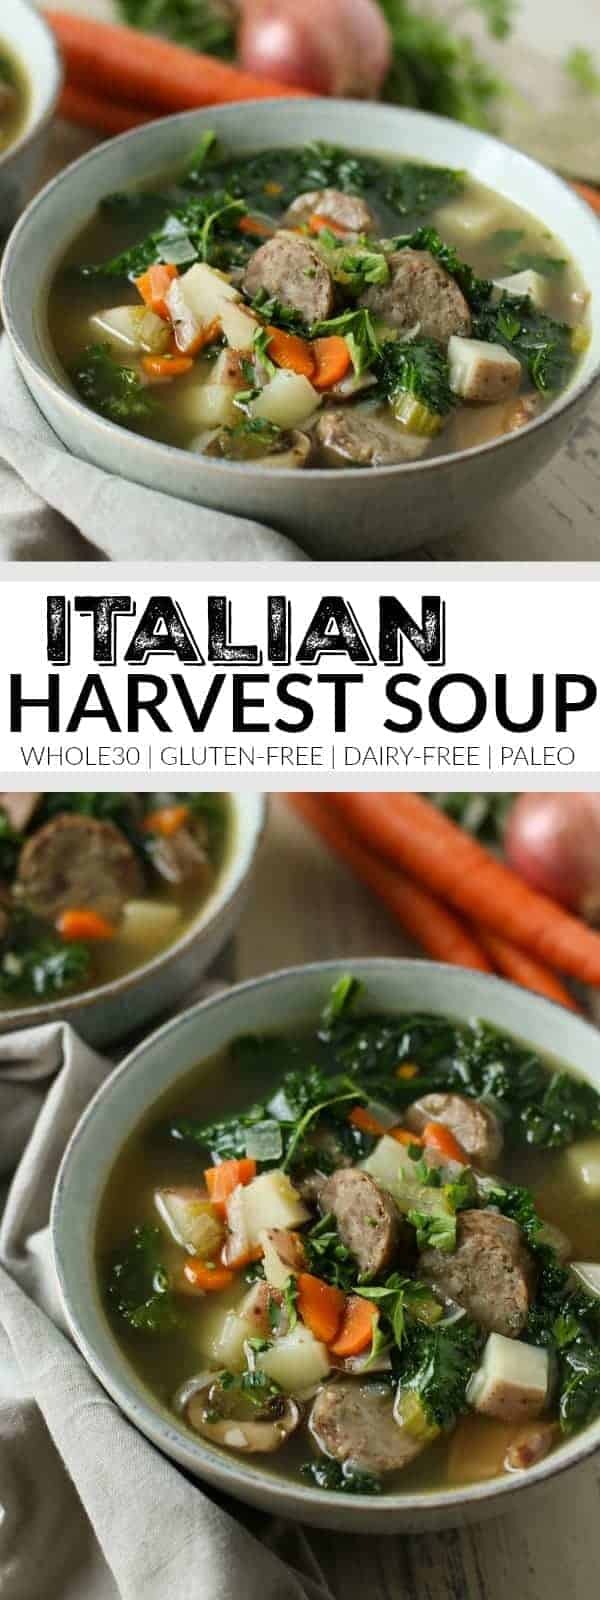 Italian Harvest Soup | whole30recipes soup recipes | gluten-free soup recipes | dairy-free soup recipes | paleo soup recipes | healthy soup recipes | cold weather recipe ideas | homemade soup recipes | whole30recipes recipe ideas | whole30 meal ideas | gluten-free dinners || The Real Food Dietitians #souprecipes #whole30recipes #whole30 #whole30soups #glutenfree